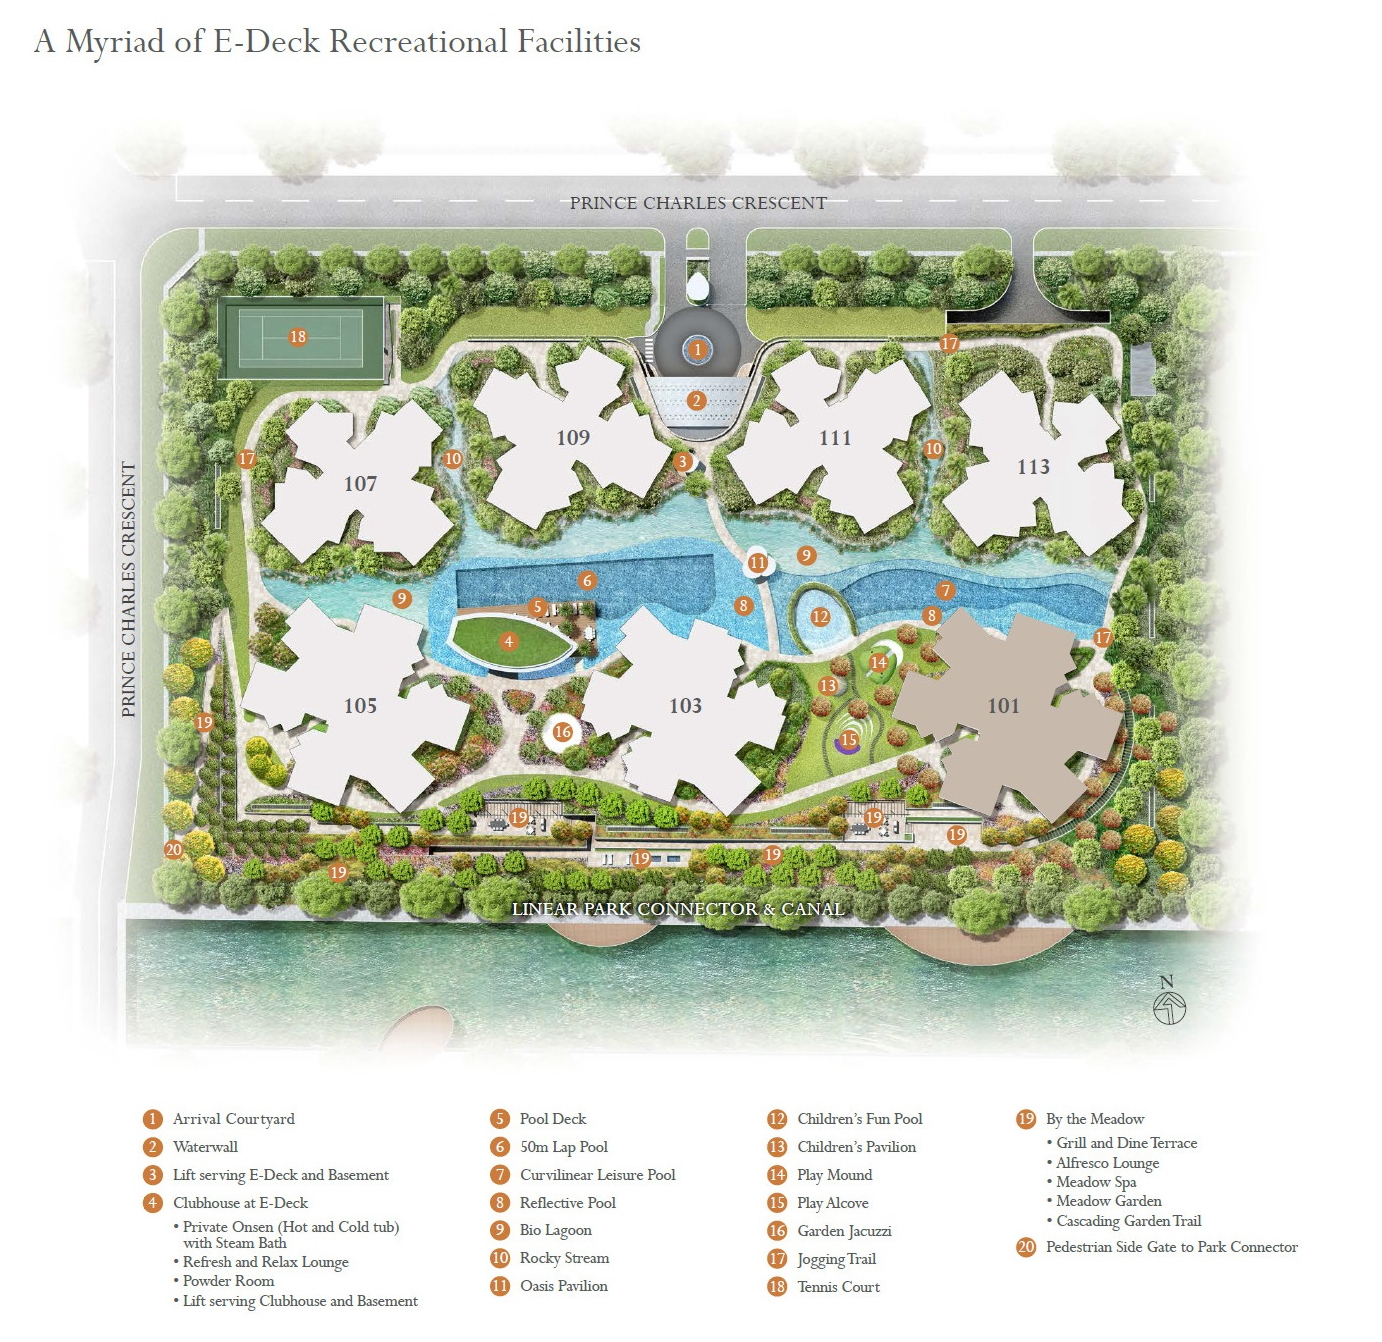 The Crest (at Prince Charles) site plan